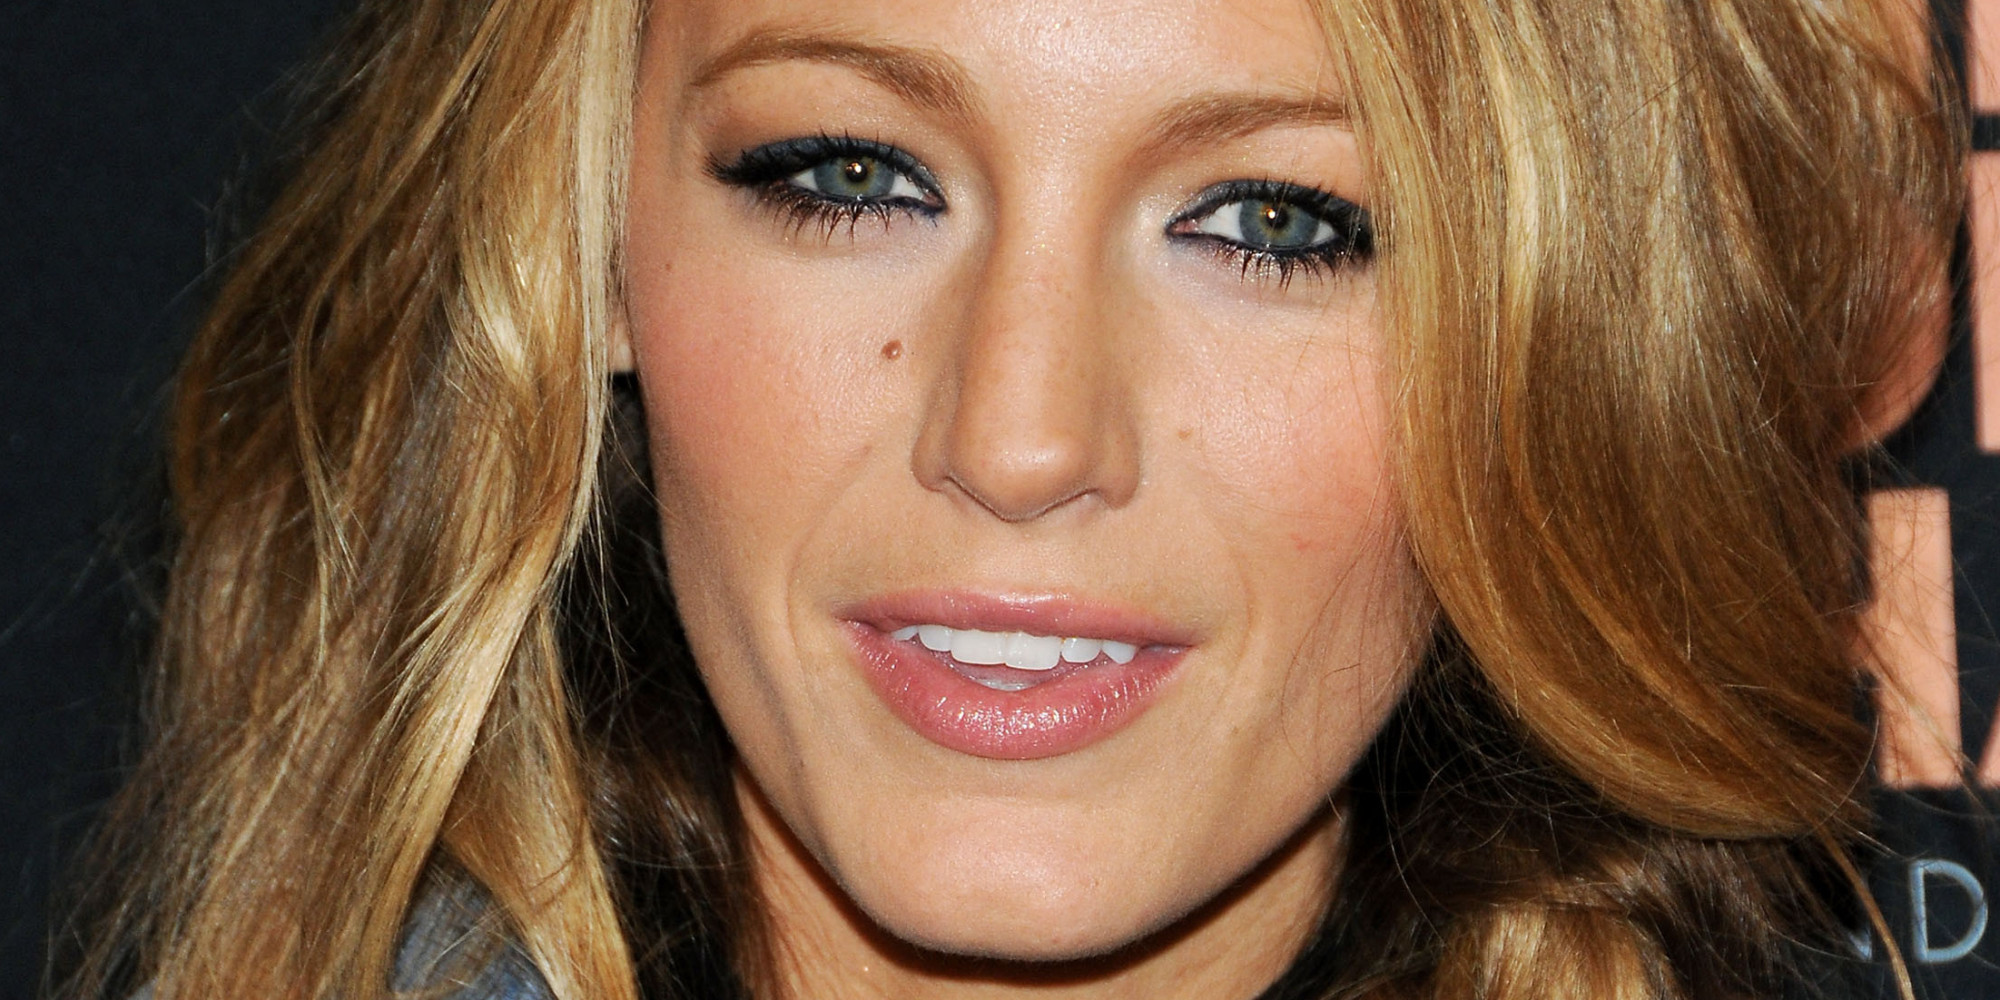 Why Everybody Hates Blake Lively's New Website ... Blake Lively Facebook